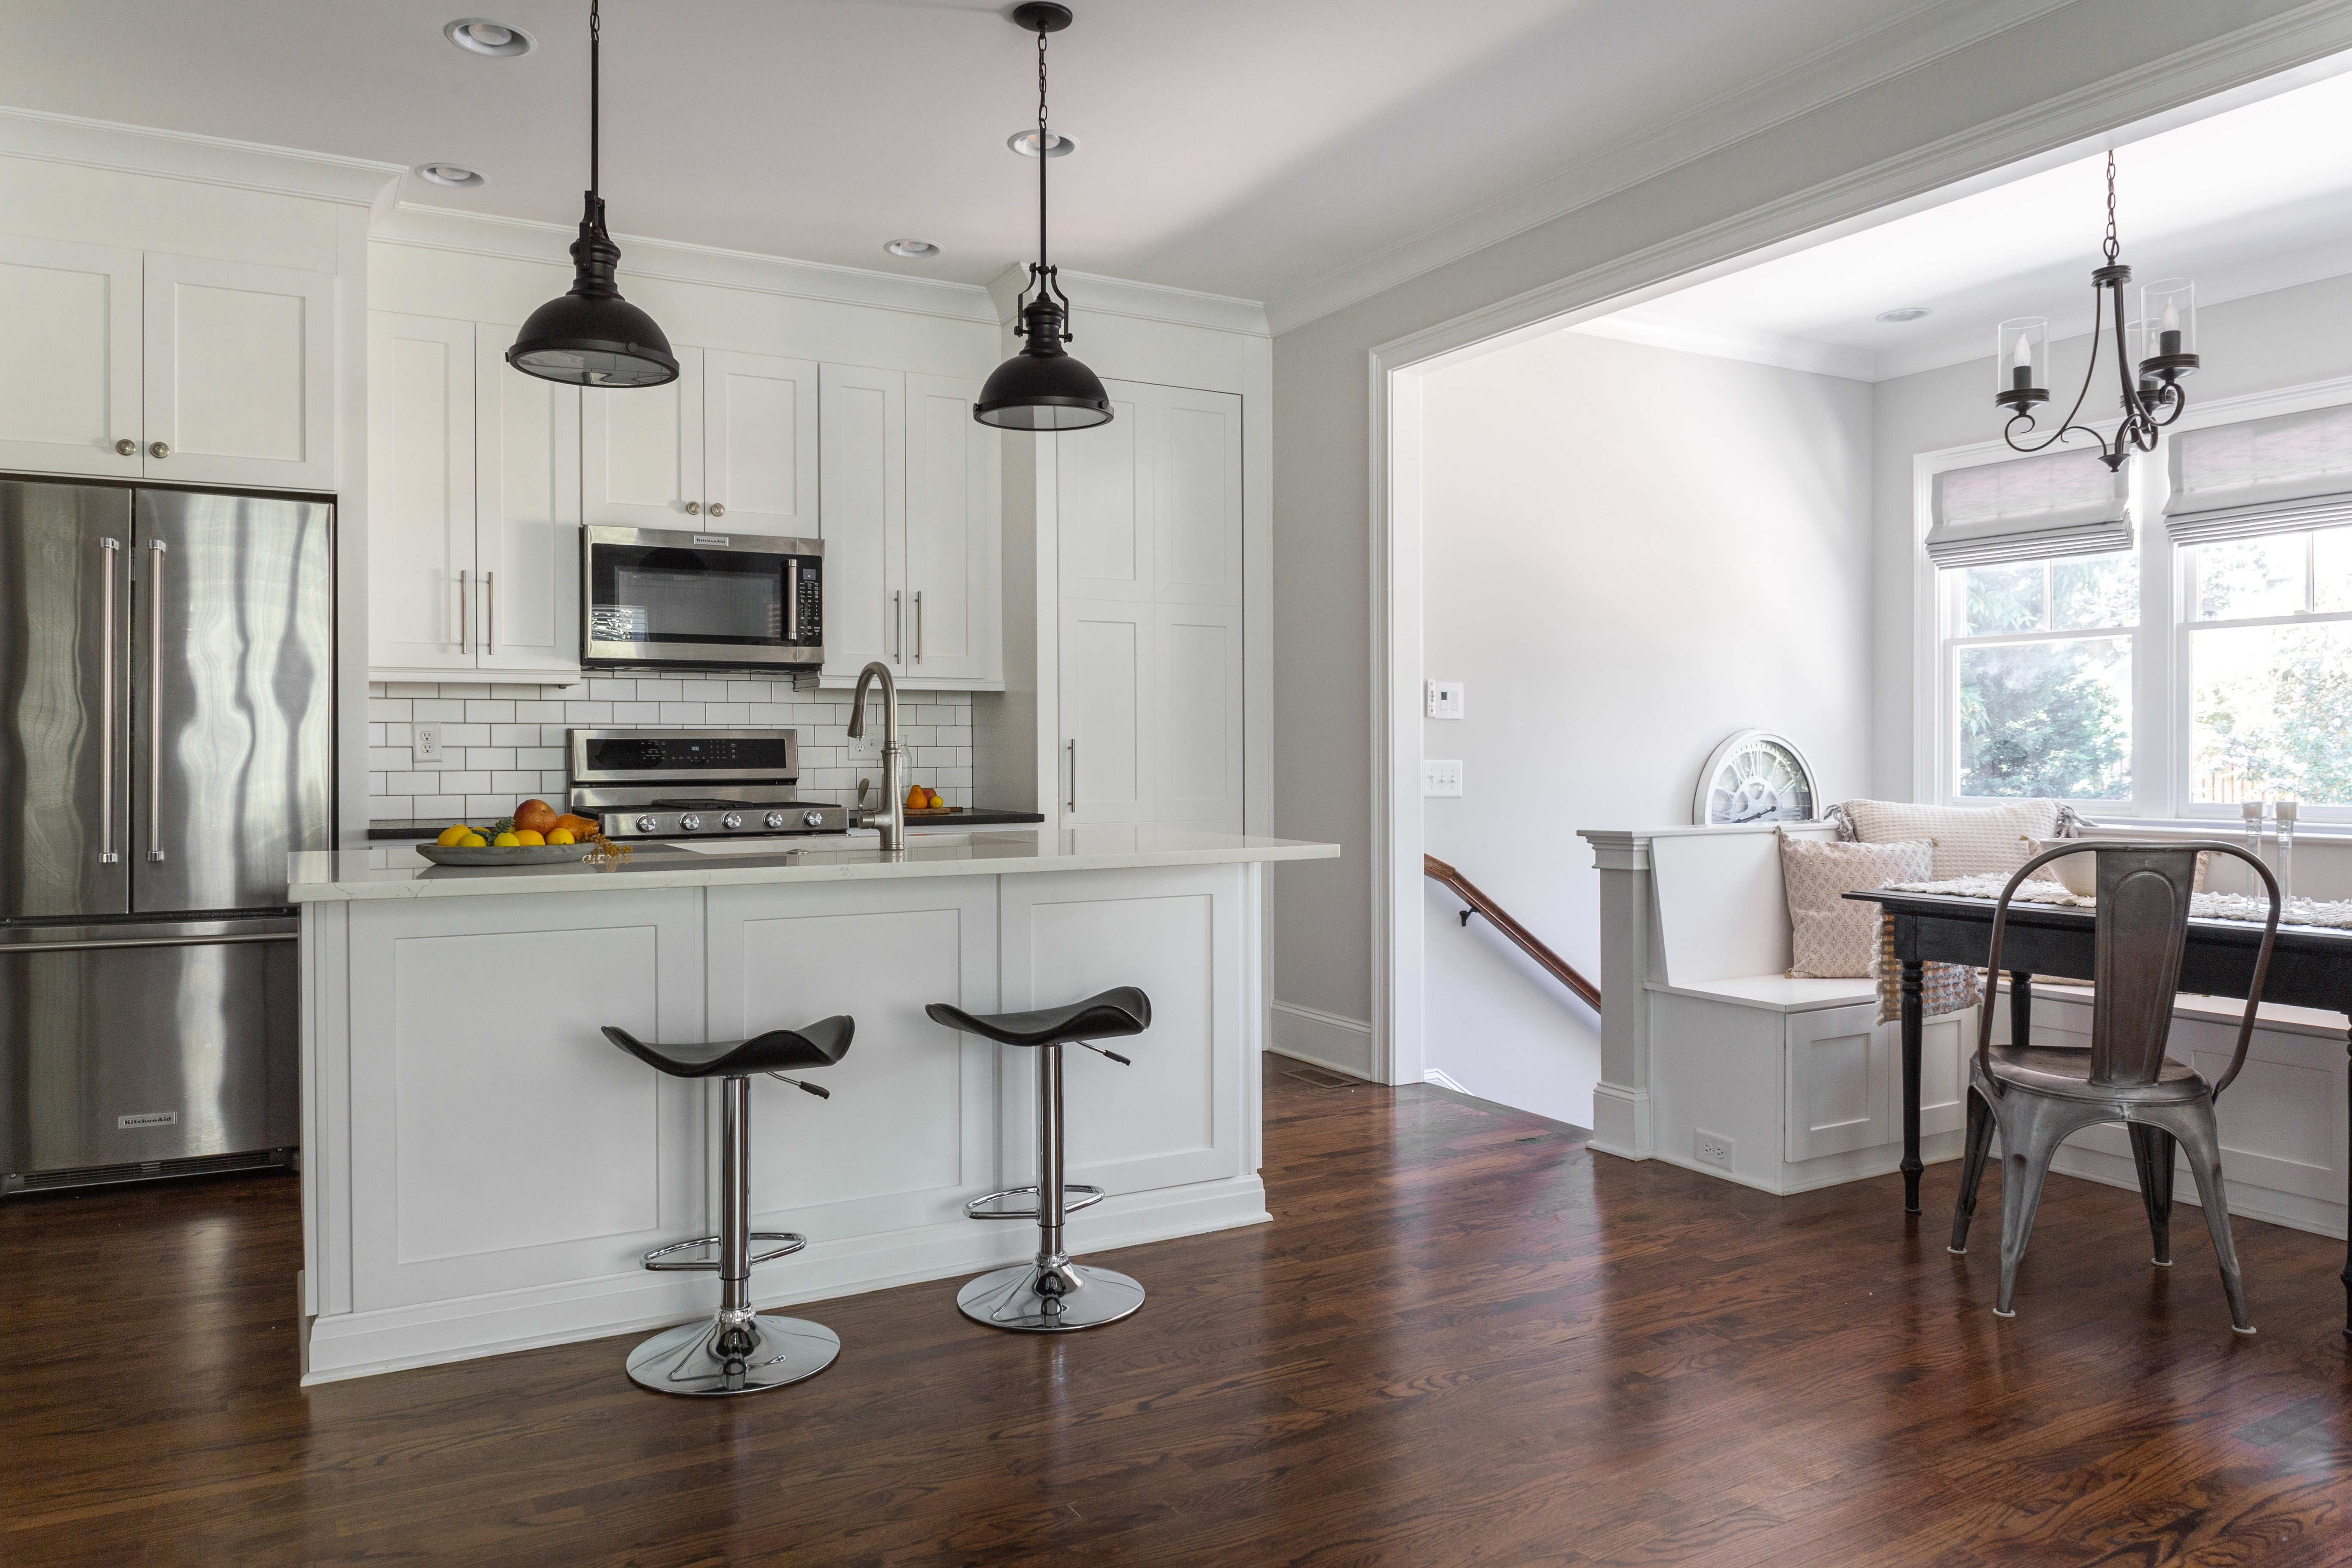 11 counter stools Sinclair Carriage House-3.jpg